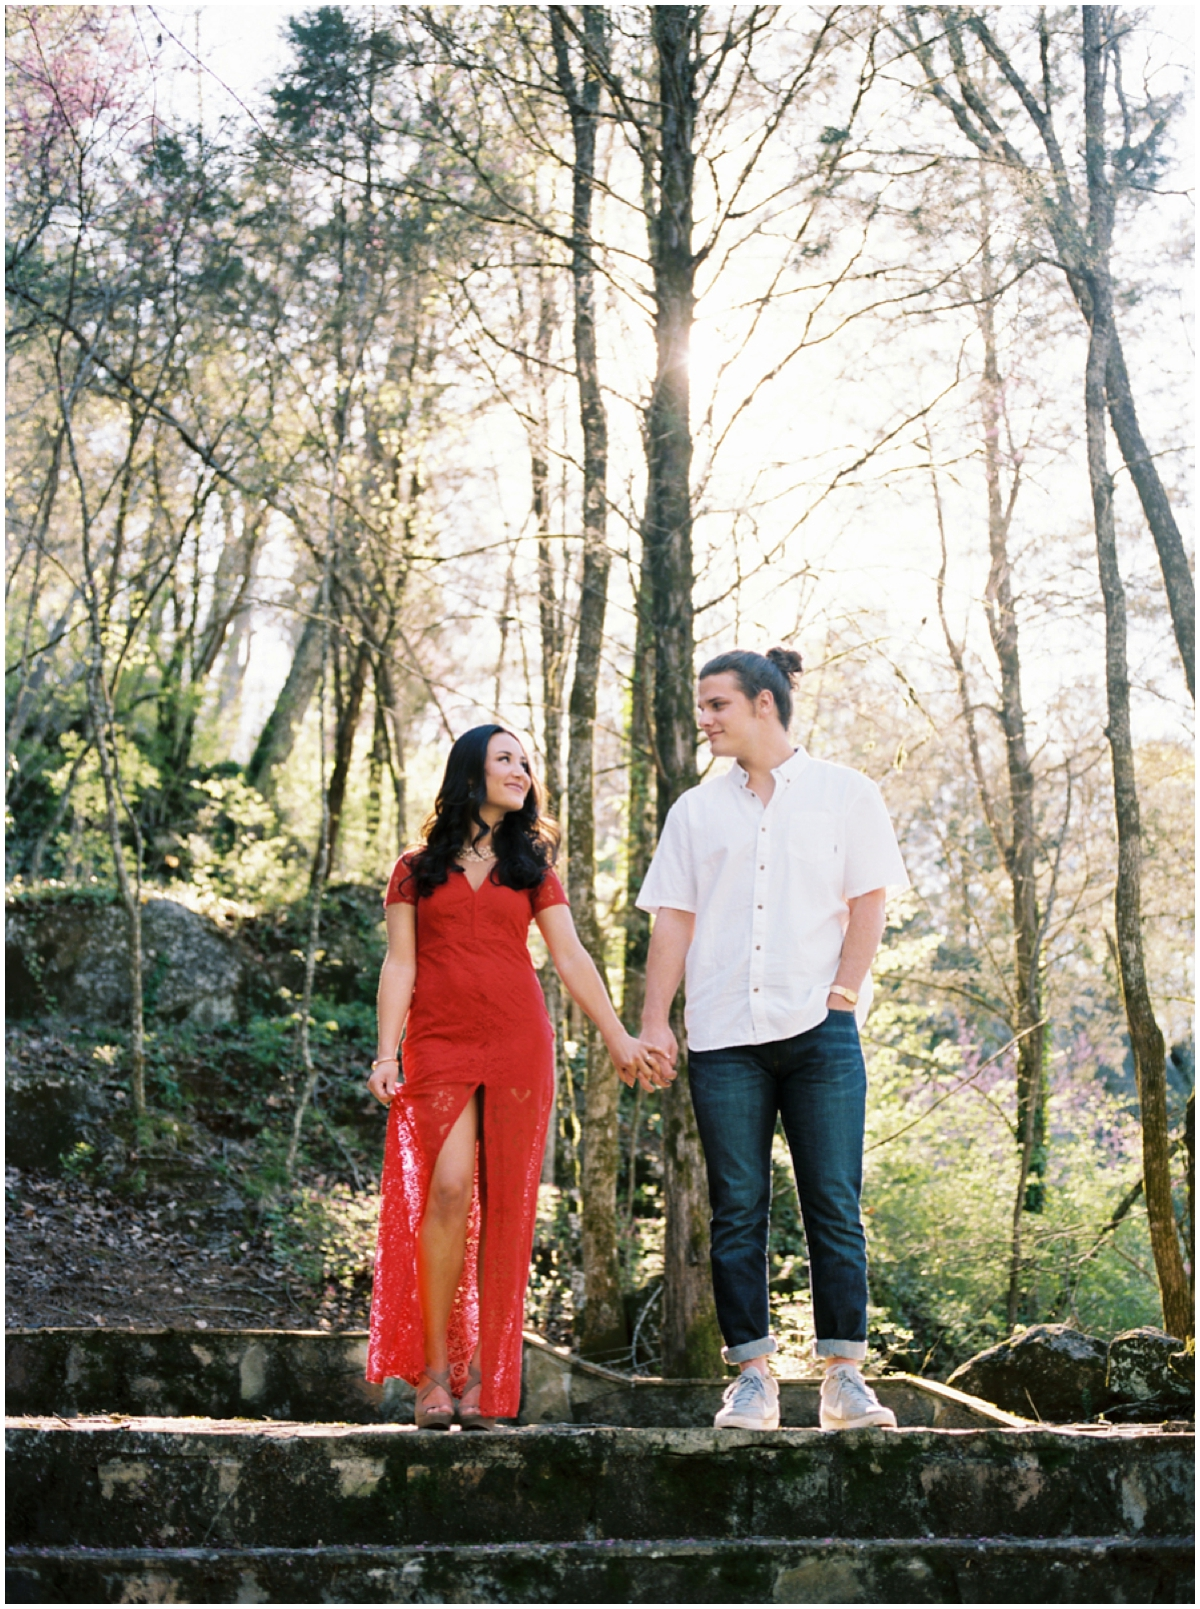 Abigail_Malone_Daras_Garden_Engagement_Film_Photography_KNoxville-3.jpg